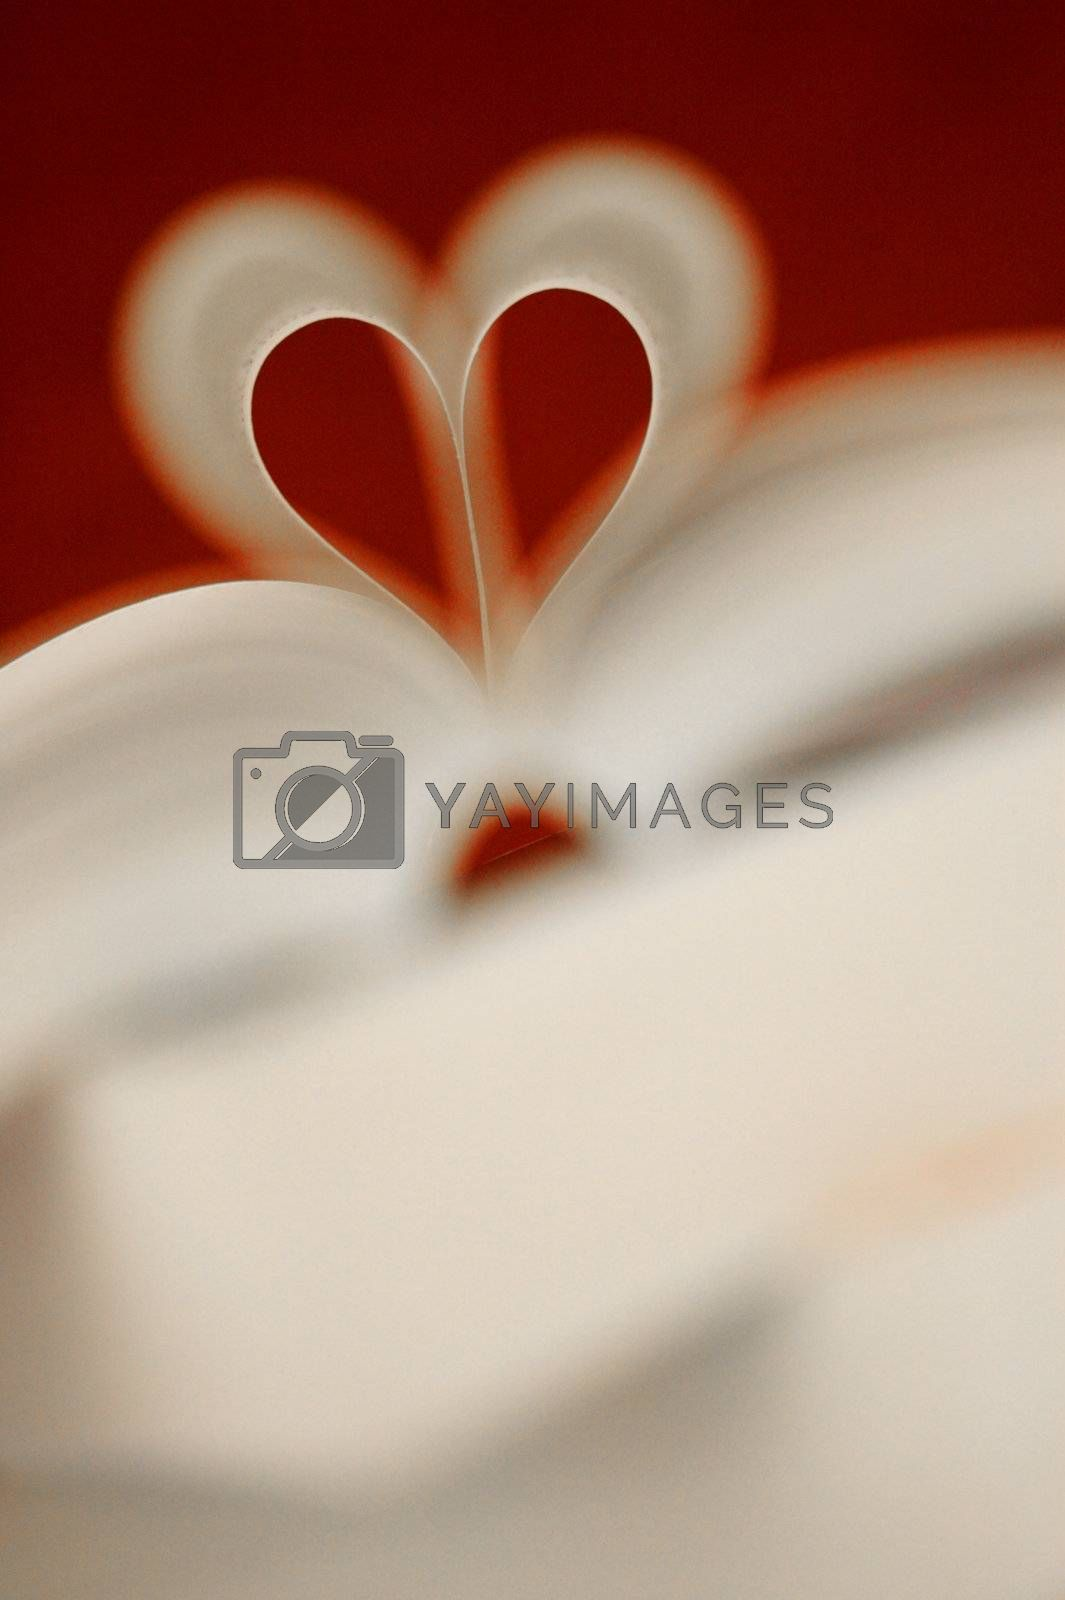 A love heart amongst the pages